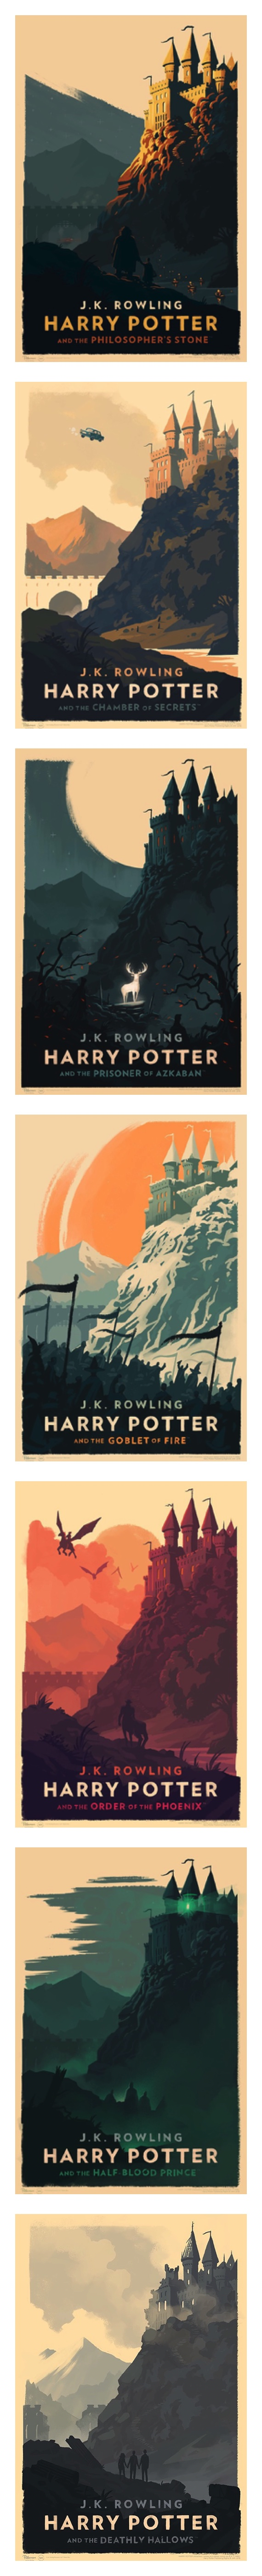 A series of minimalist Harry Potter posters by Olly Moss